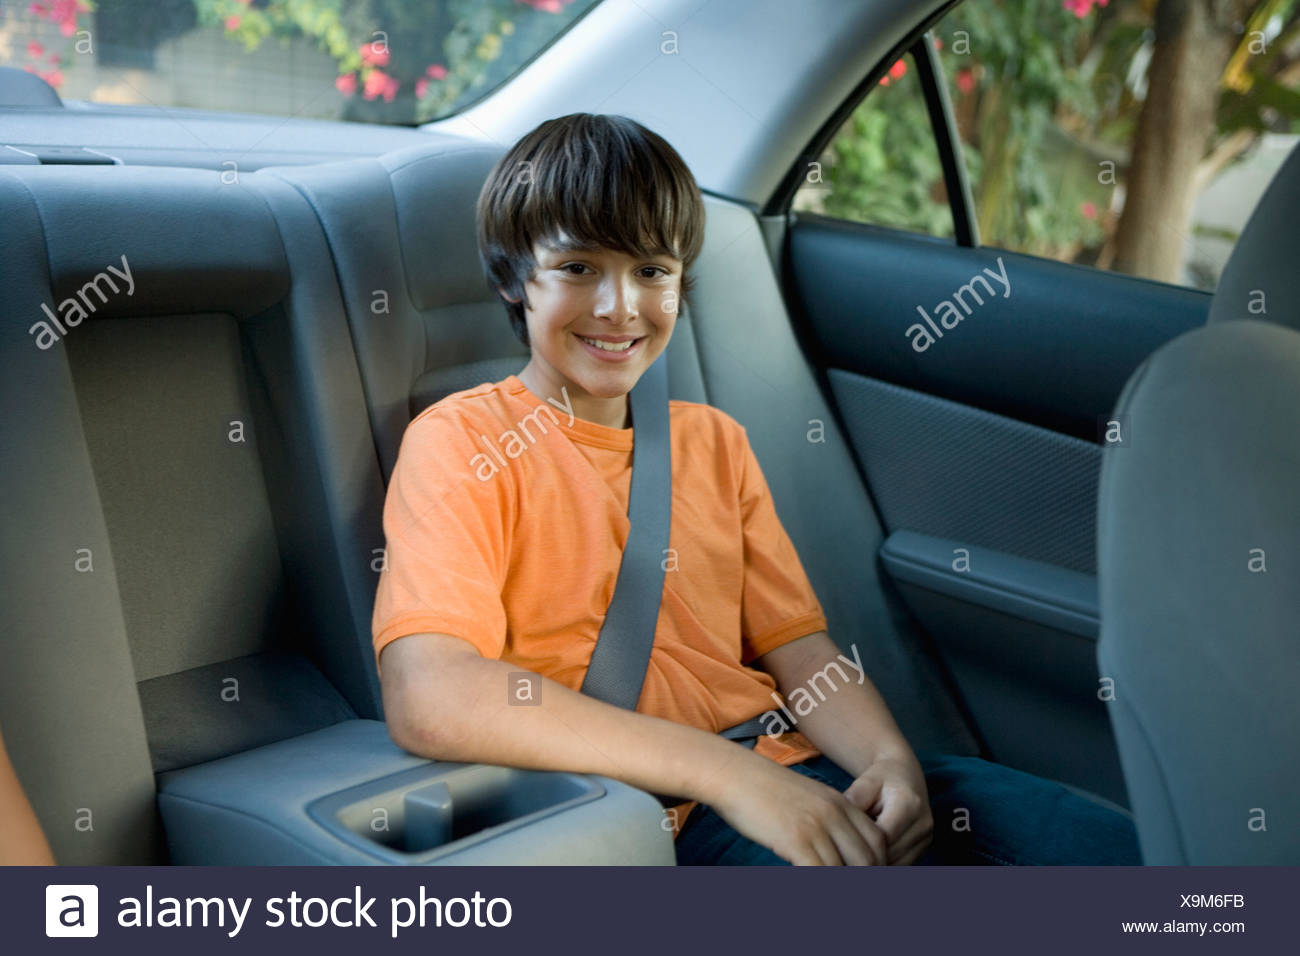 Boy sitting in back seat of car - Stock Image